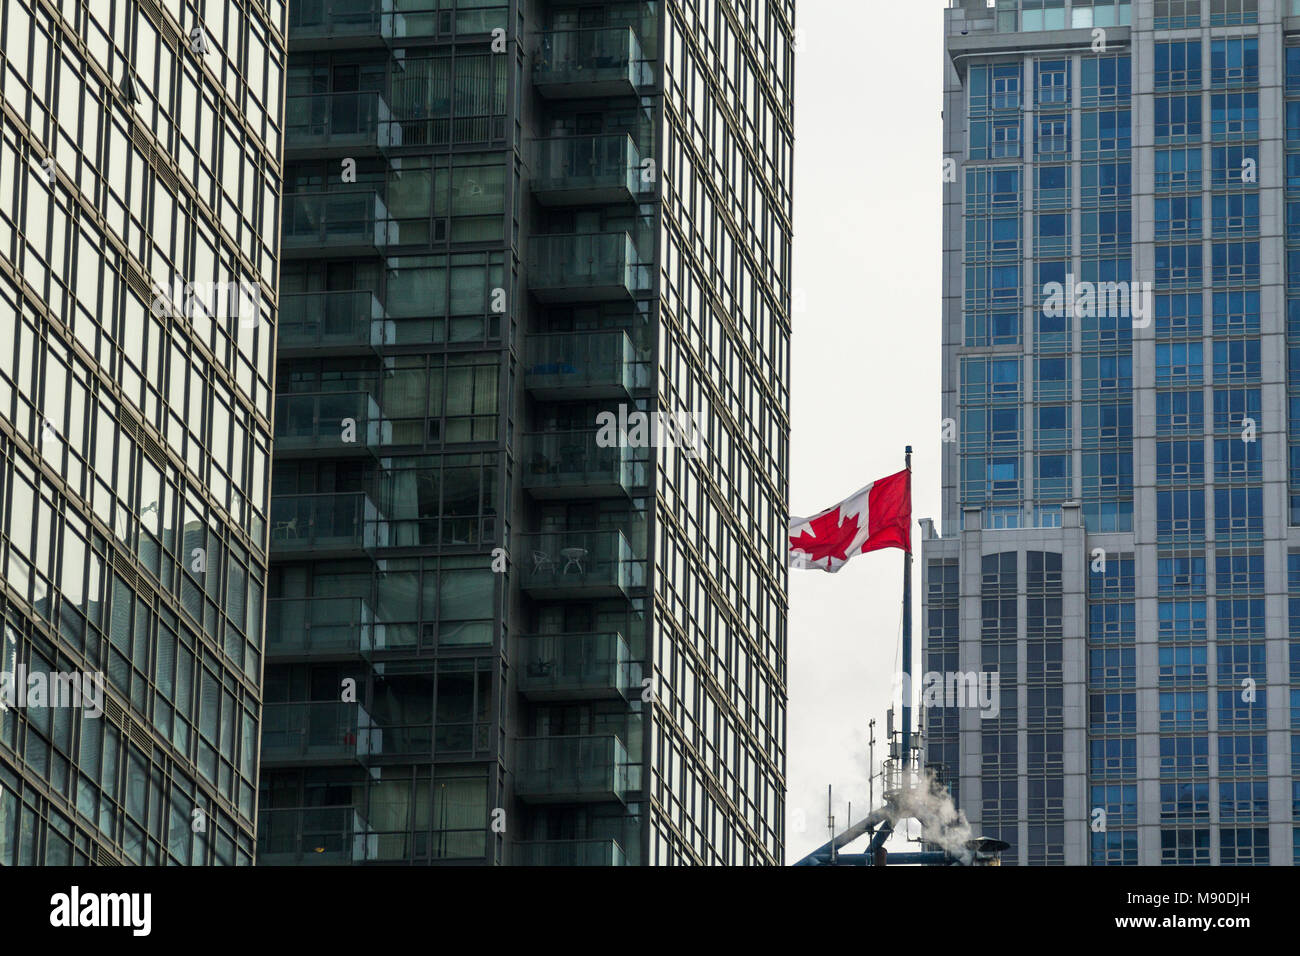 Flag of Canada waiving in the air surrounded by high rises and skyscrapers in the economic capital city of Canada, - Stock Image